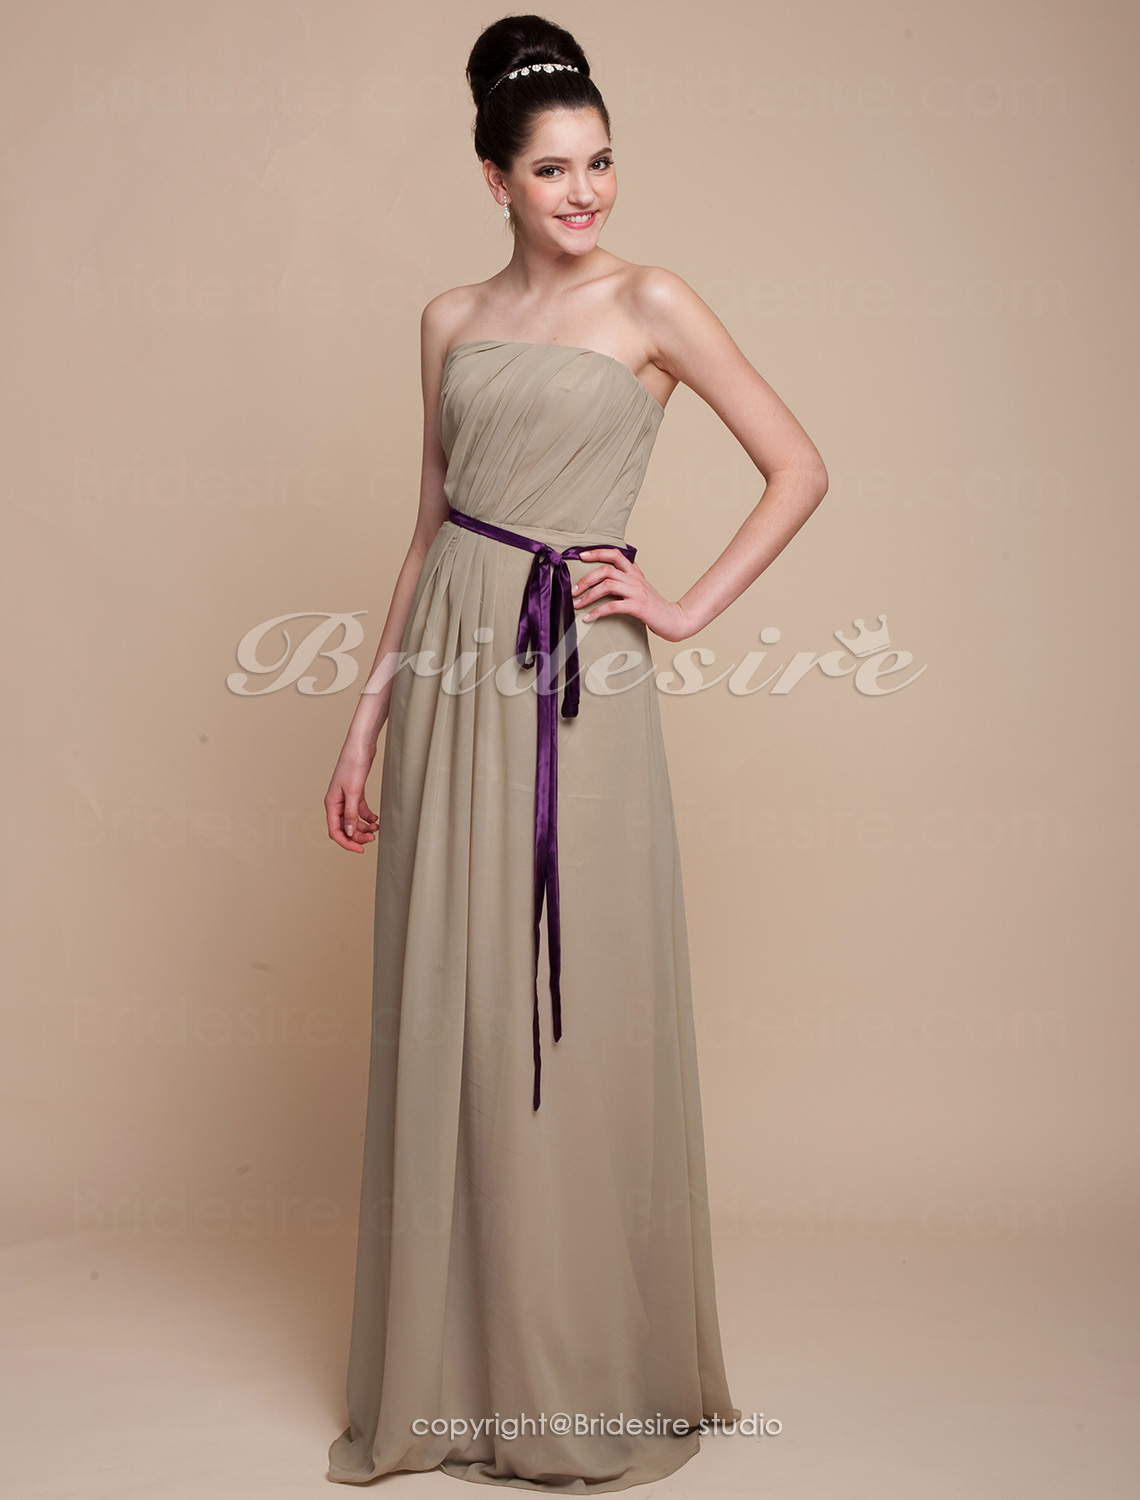 Sheath/ Column Floor-length Chiffon Strapless Bridesmaid Dress